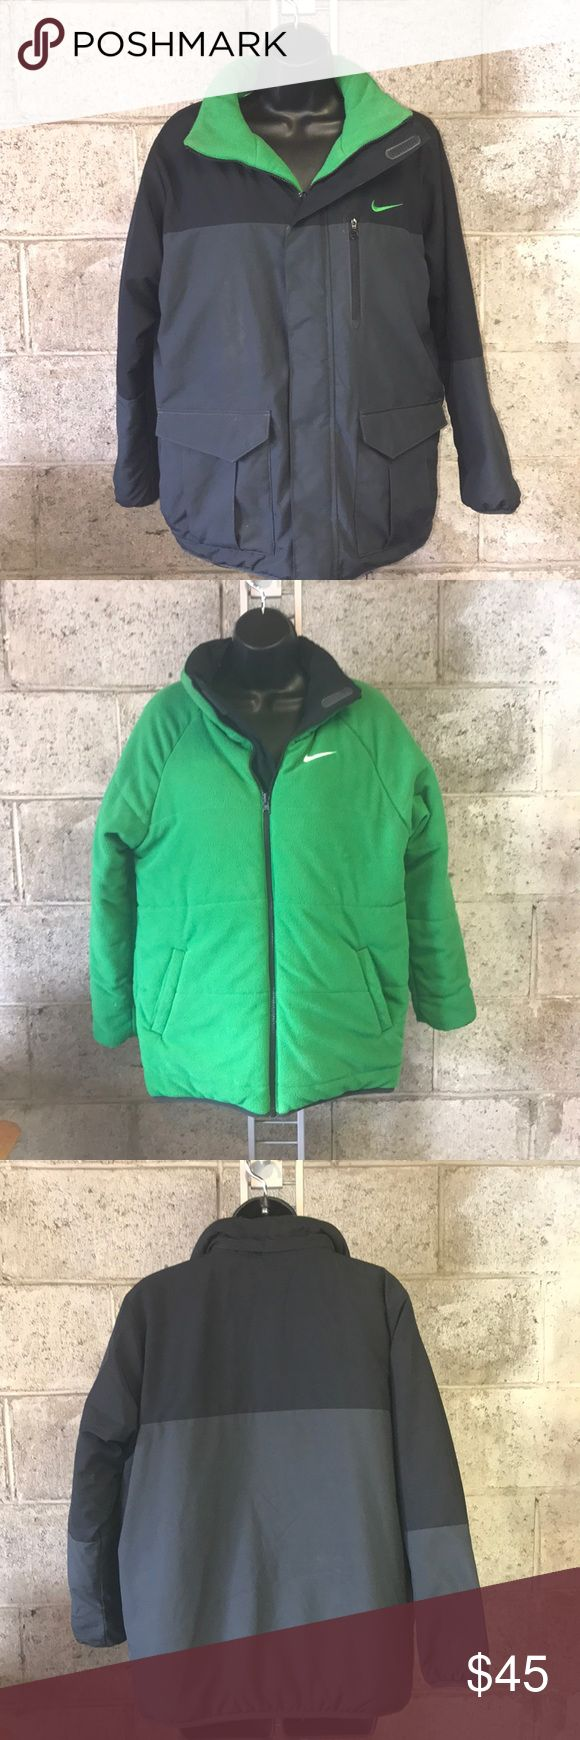 Reversible Nike winter coat NWOT Great condition. New without tags. Boys winter Nike jacket. Does not have hood. Reversible. Soft green on one side and black on the outside. Smoke and pet free home. Open to offers. Great for fall winter or school! Nike Jackets & Coats Puffers